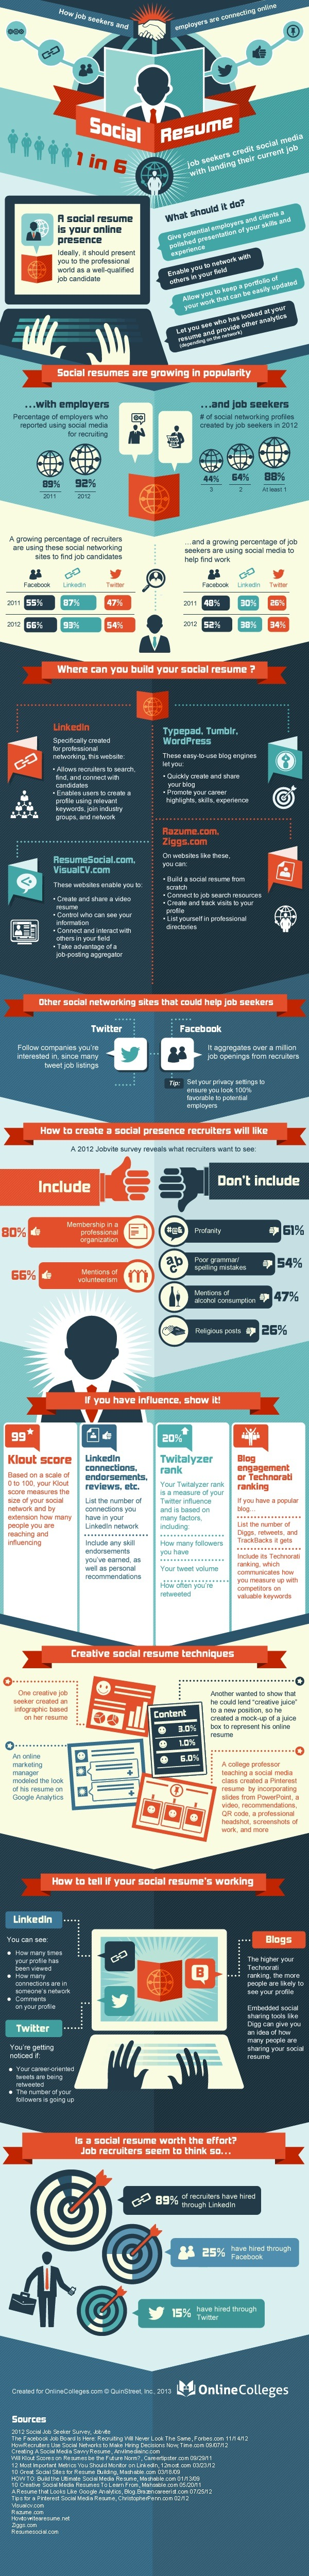 how to get a job using social media infographic